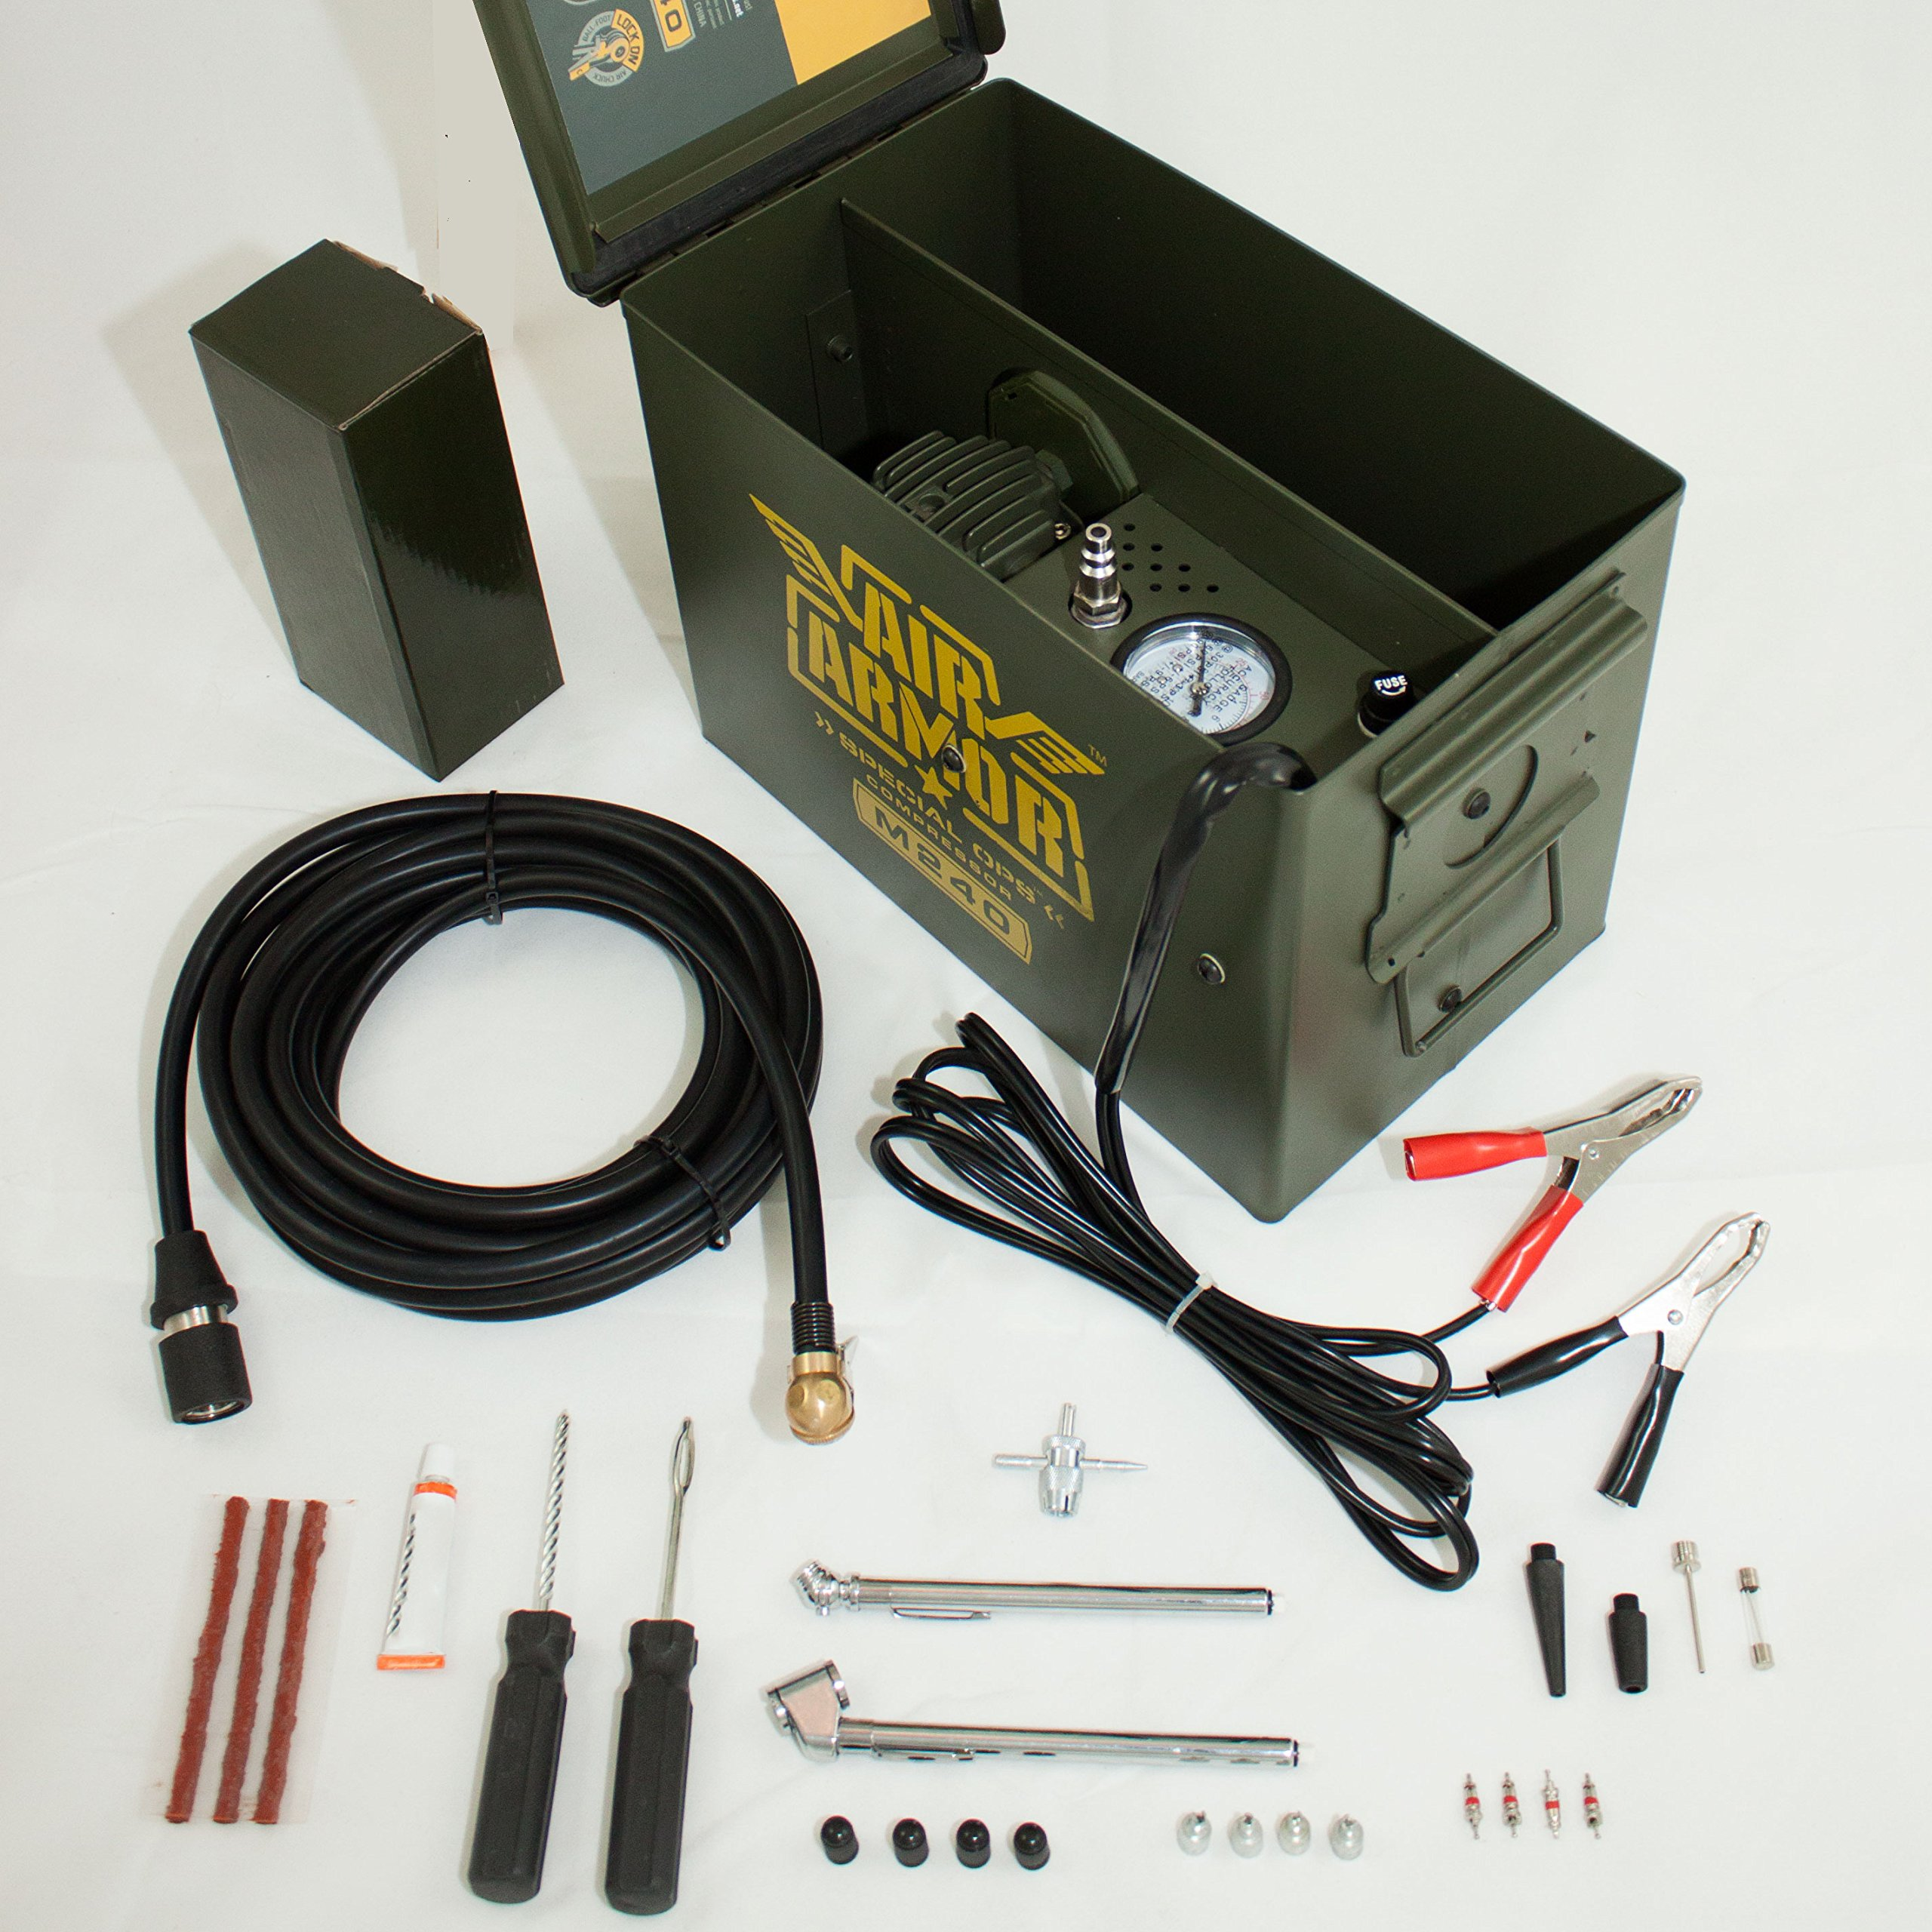 Air Armor M240 Portable 12-Volt Tactical Air Compressor Kit Tire Inflator by Air Armor (Image #2)